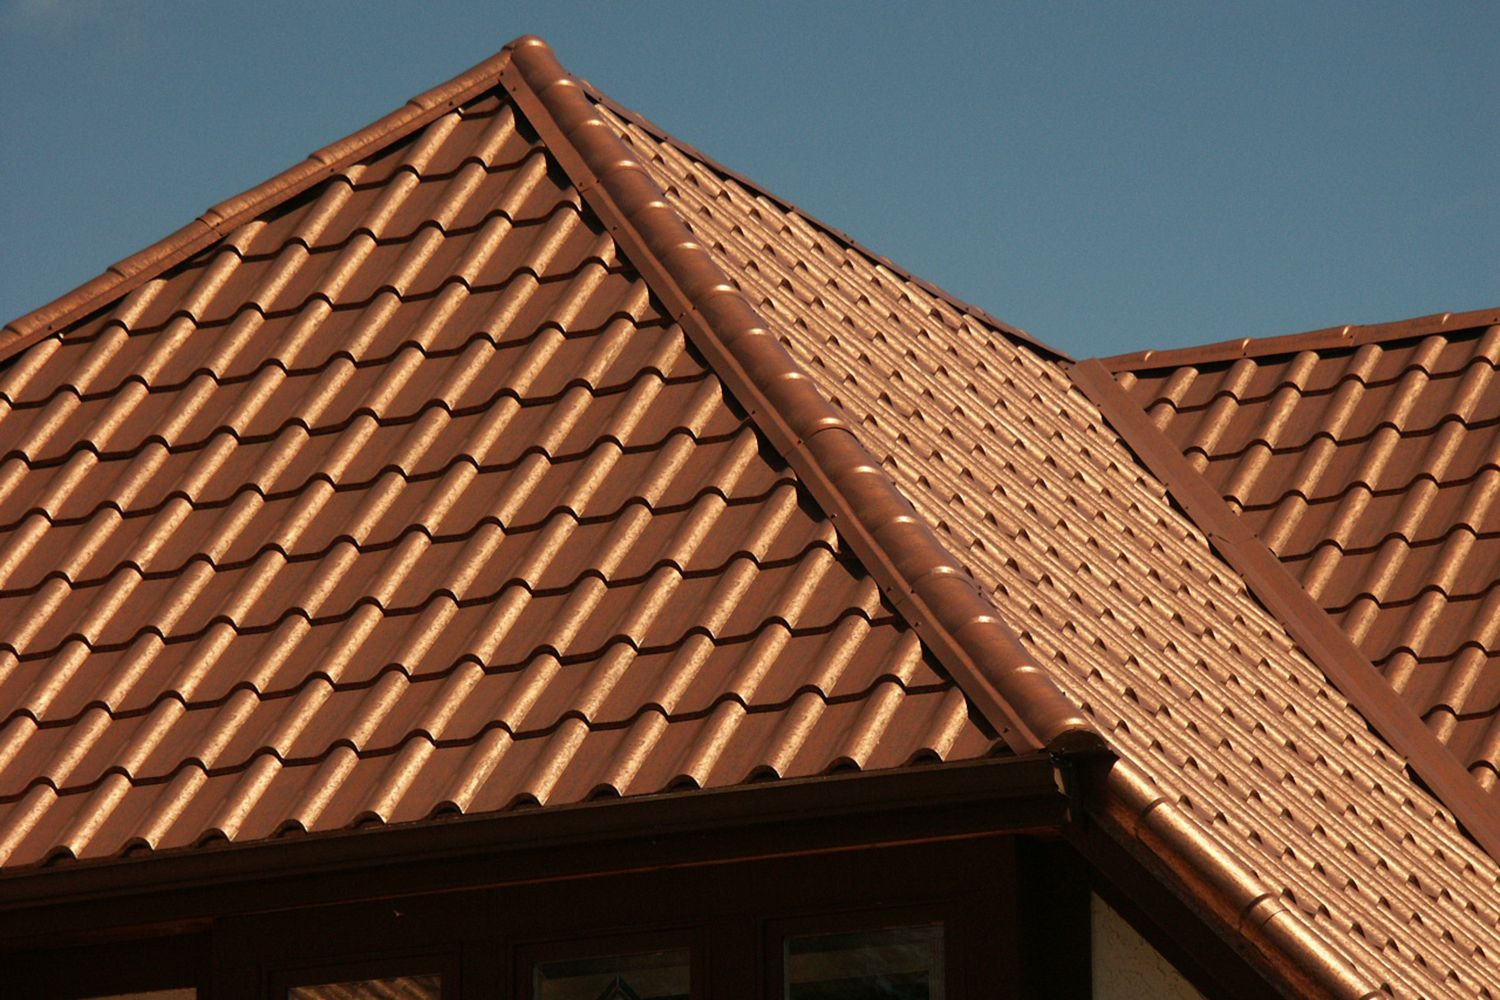 Interlock Tile Roof System Copper Roof Clay Roof Tiles Metal Roofing Systems